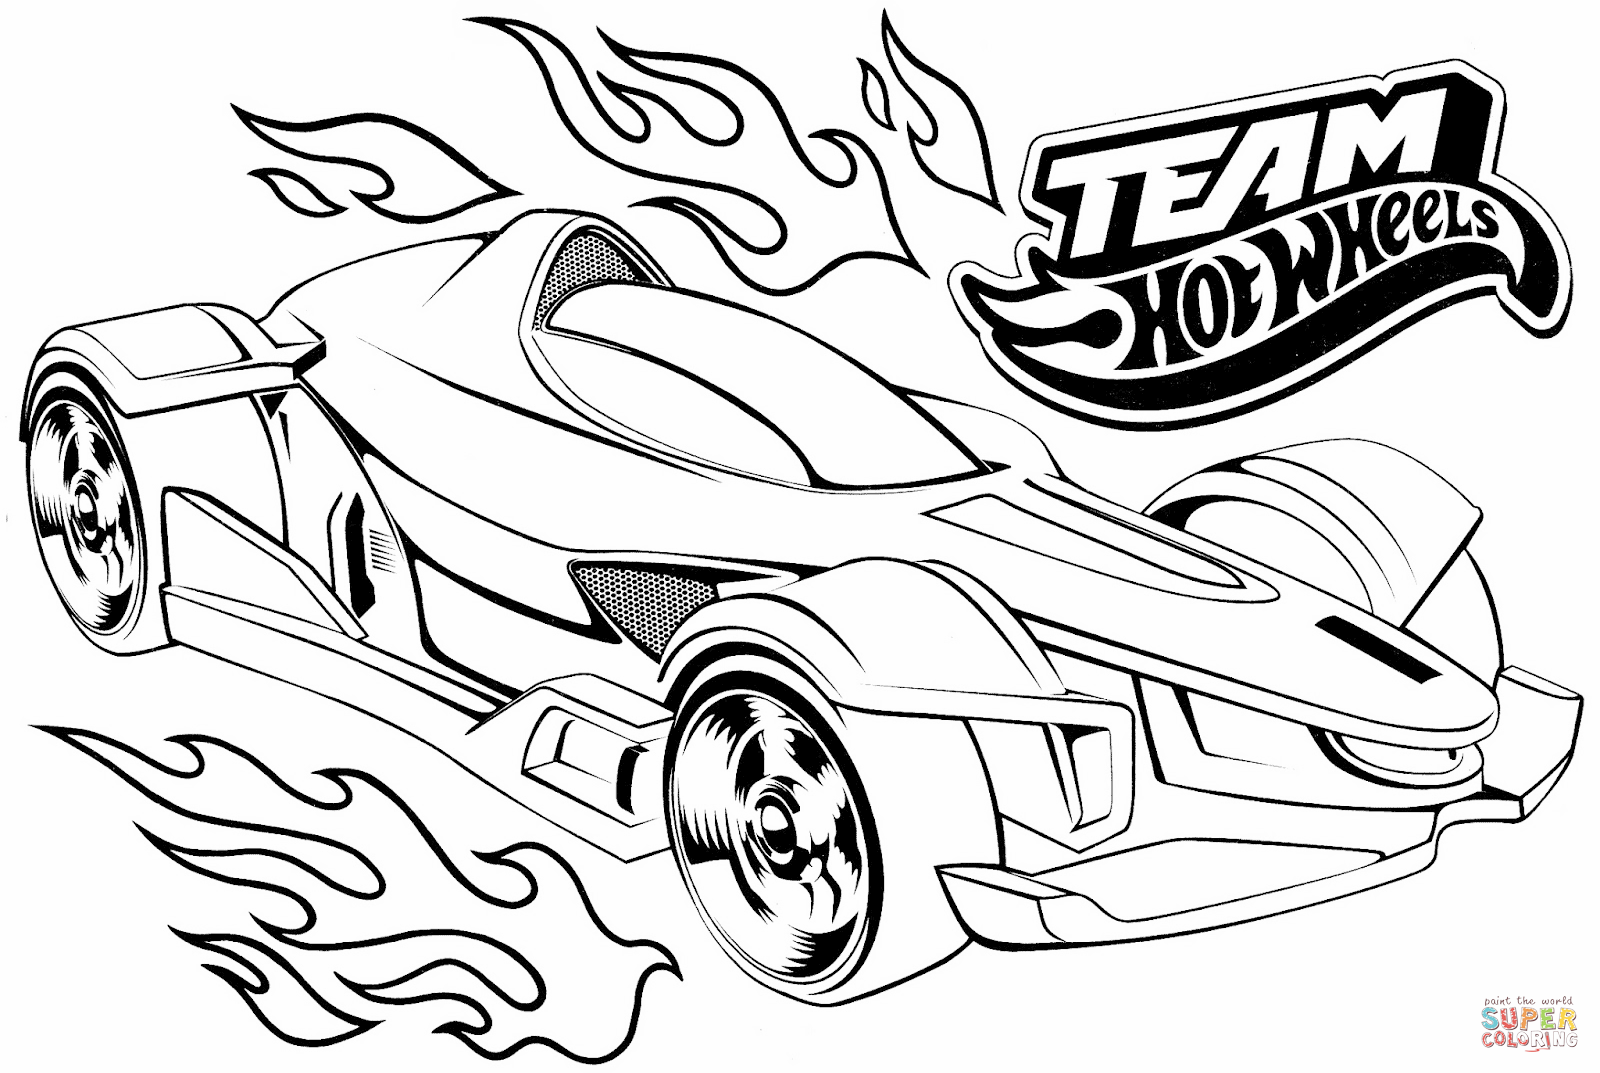 1600x1073 Team Hot Wheels Coloring Page Free Printable Coloring Pages